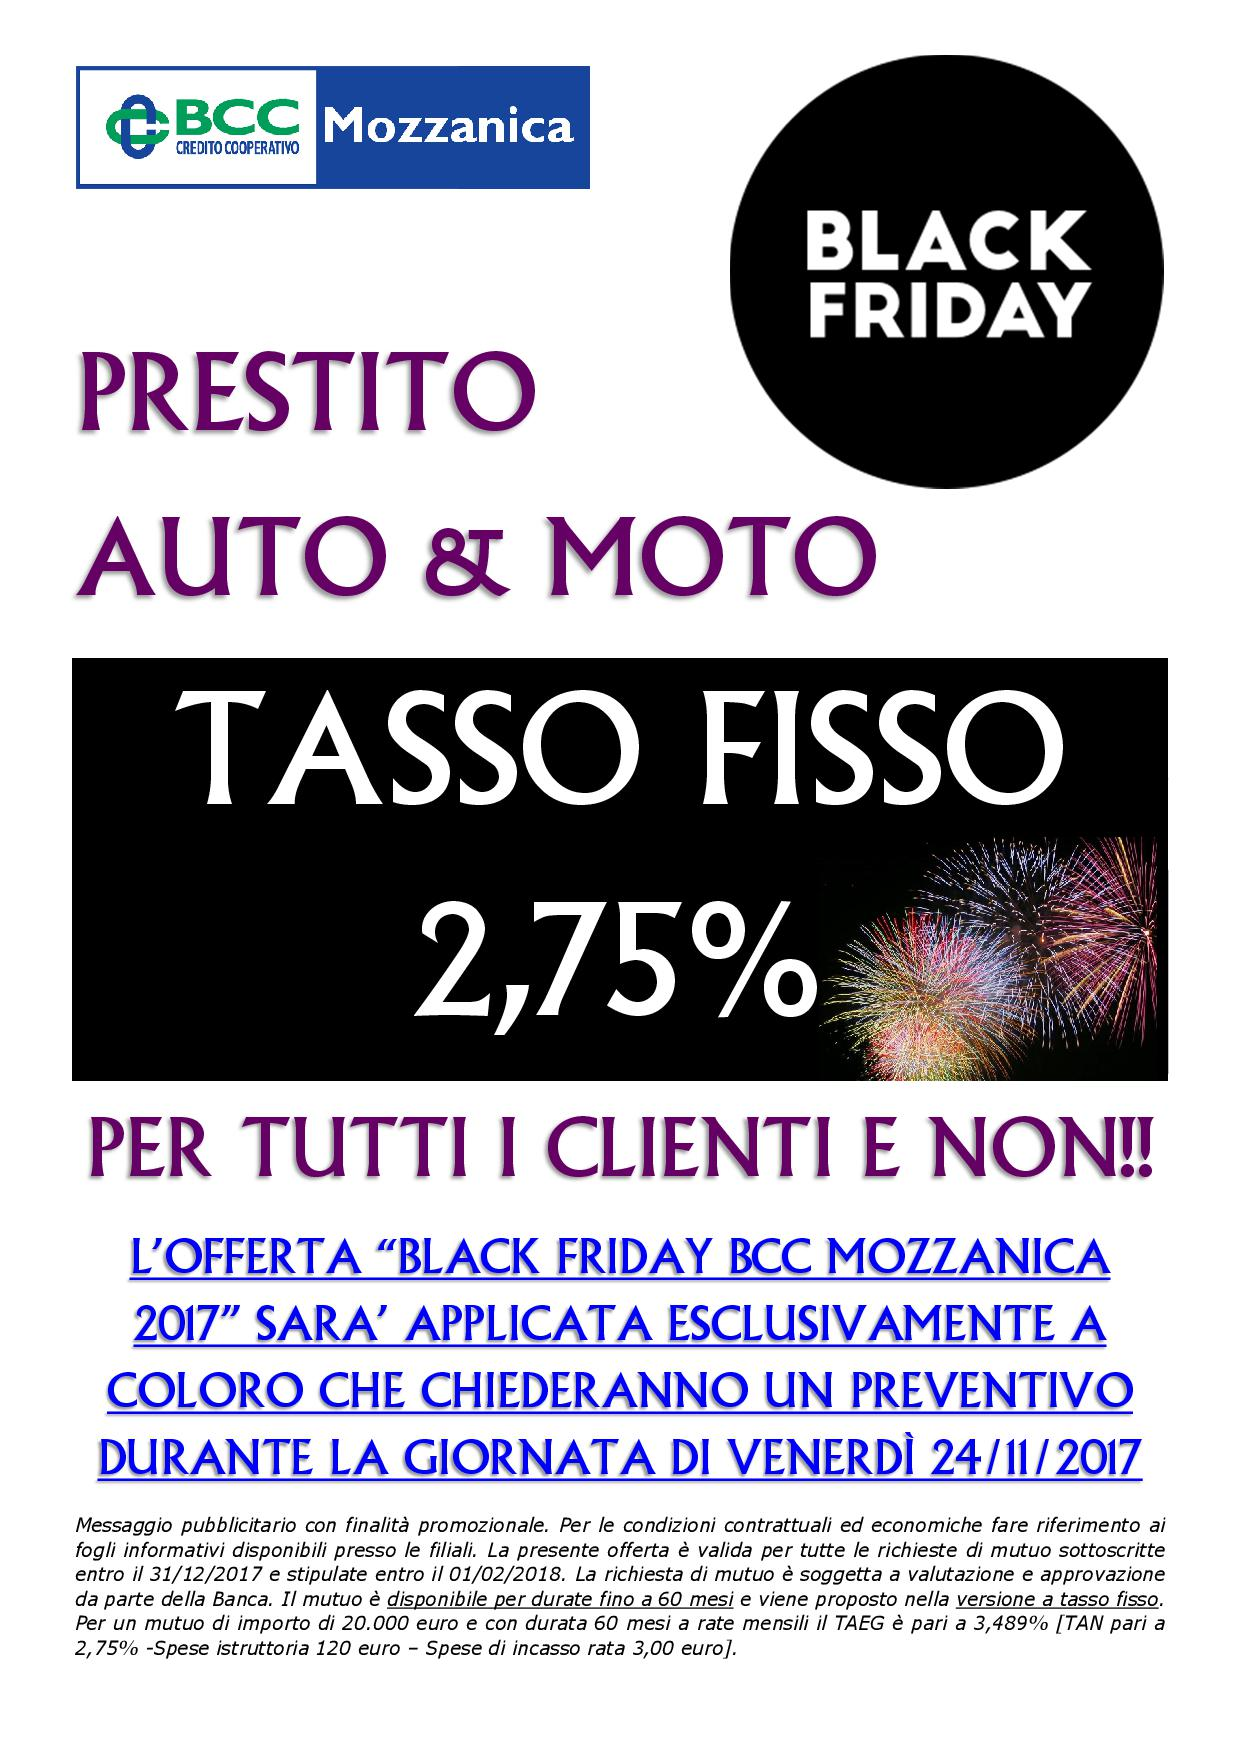 black friday bcc mozzanica 2017